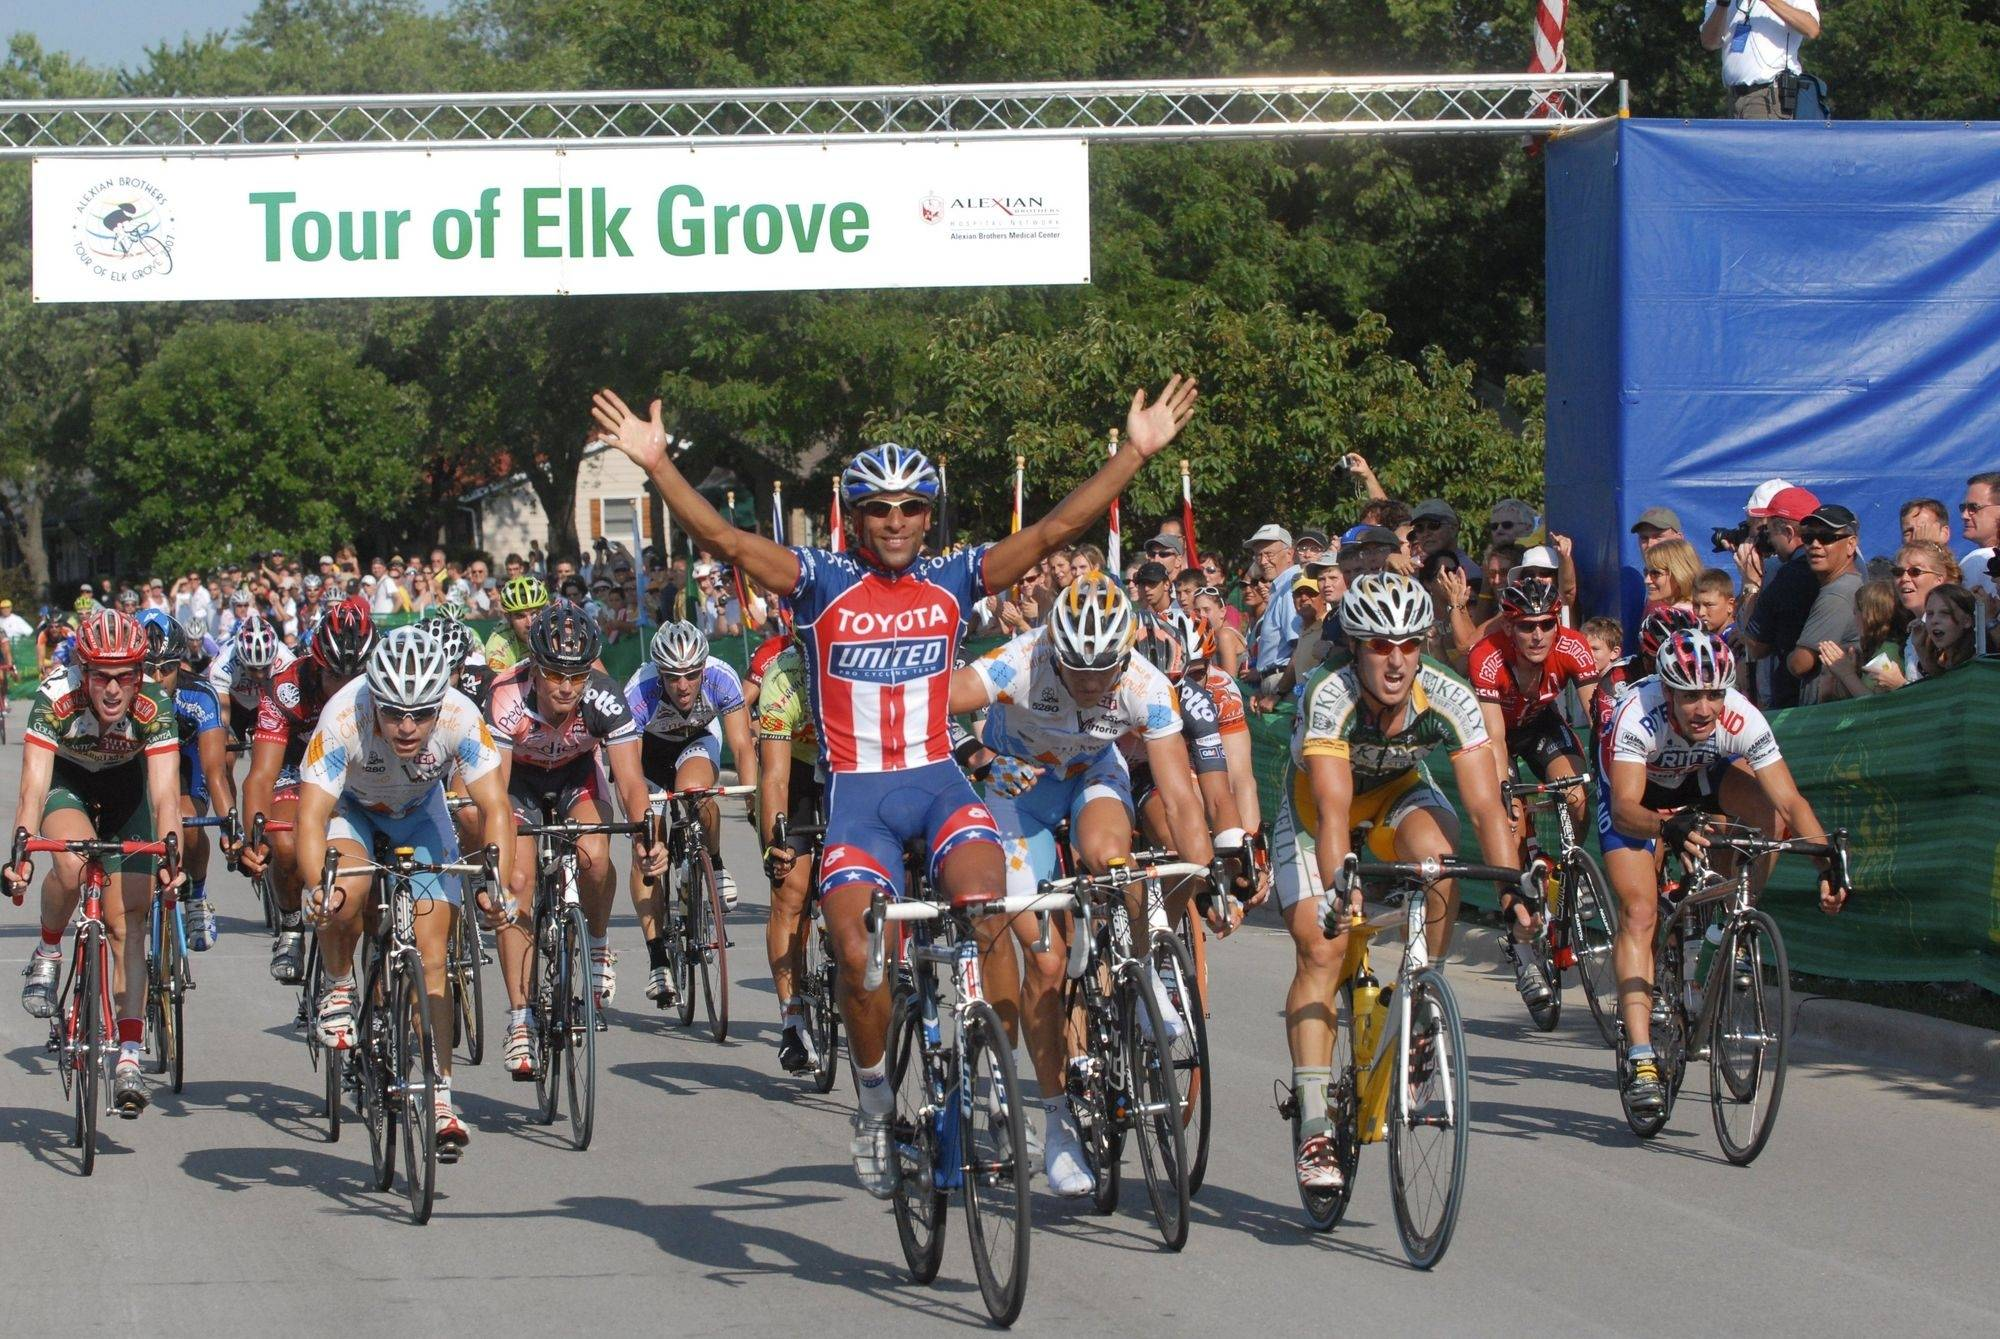 Tour of Elk Grove offers three days of competitive riding, community events